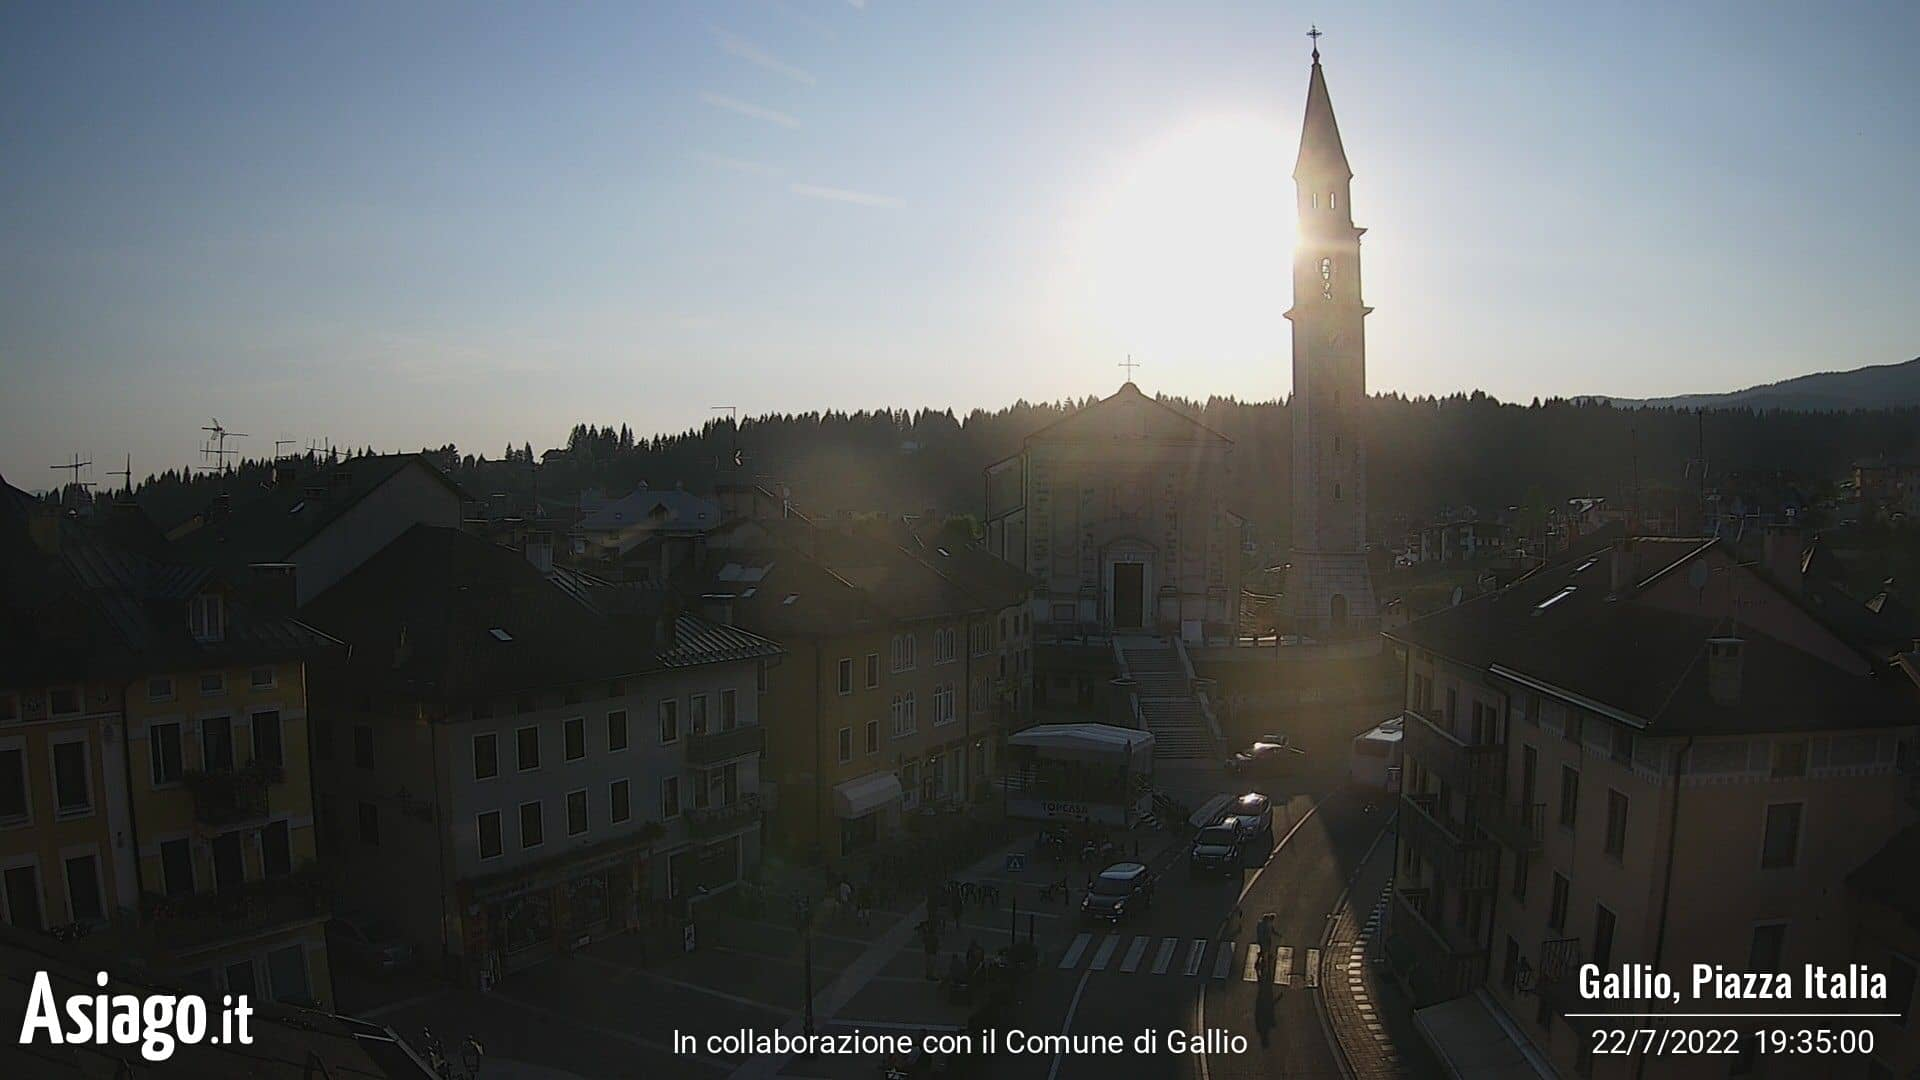 Asiago.It live webcams on the square of Gallio